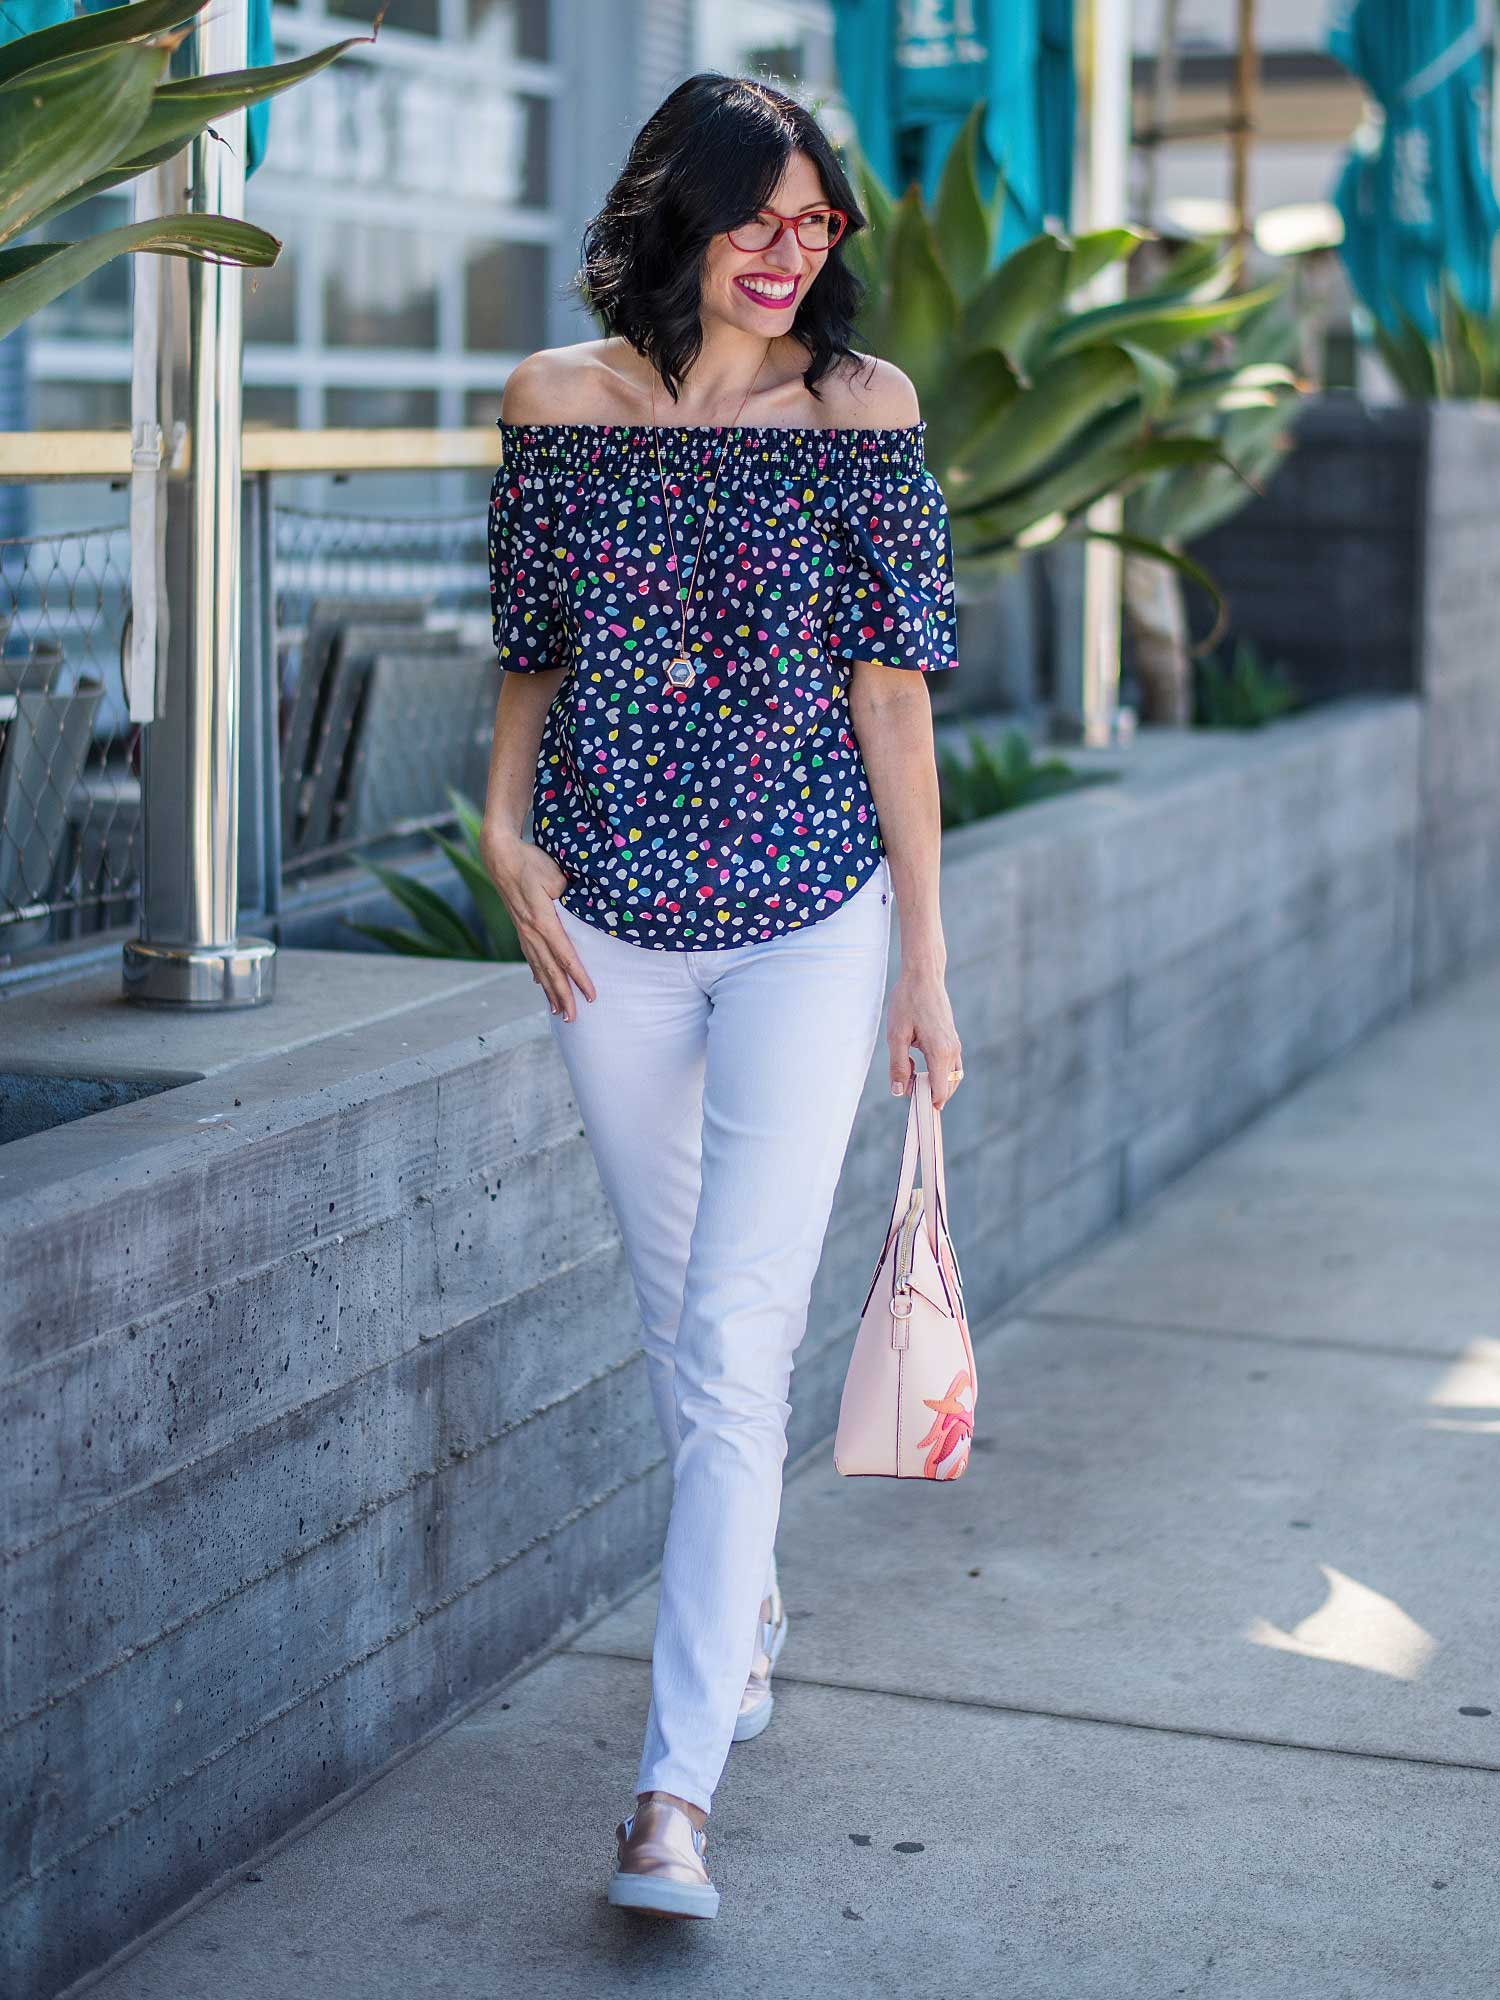 Jenna-Pilant-Lucky-Little-Mustardseed-How-To-Wear-An-Off-The-Shoulder-Top-2